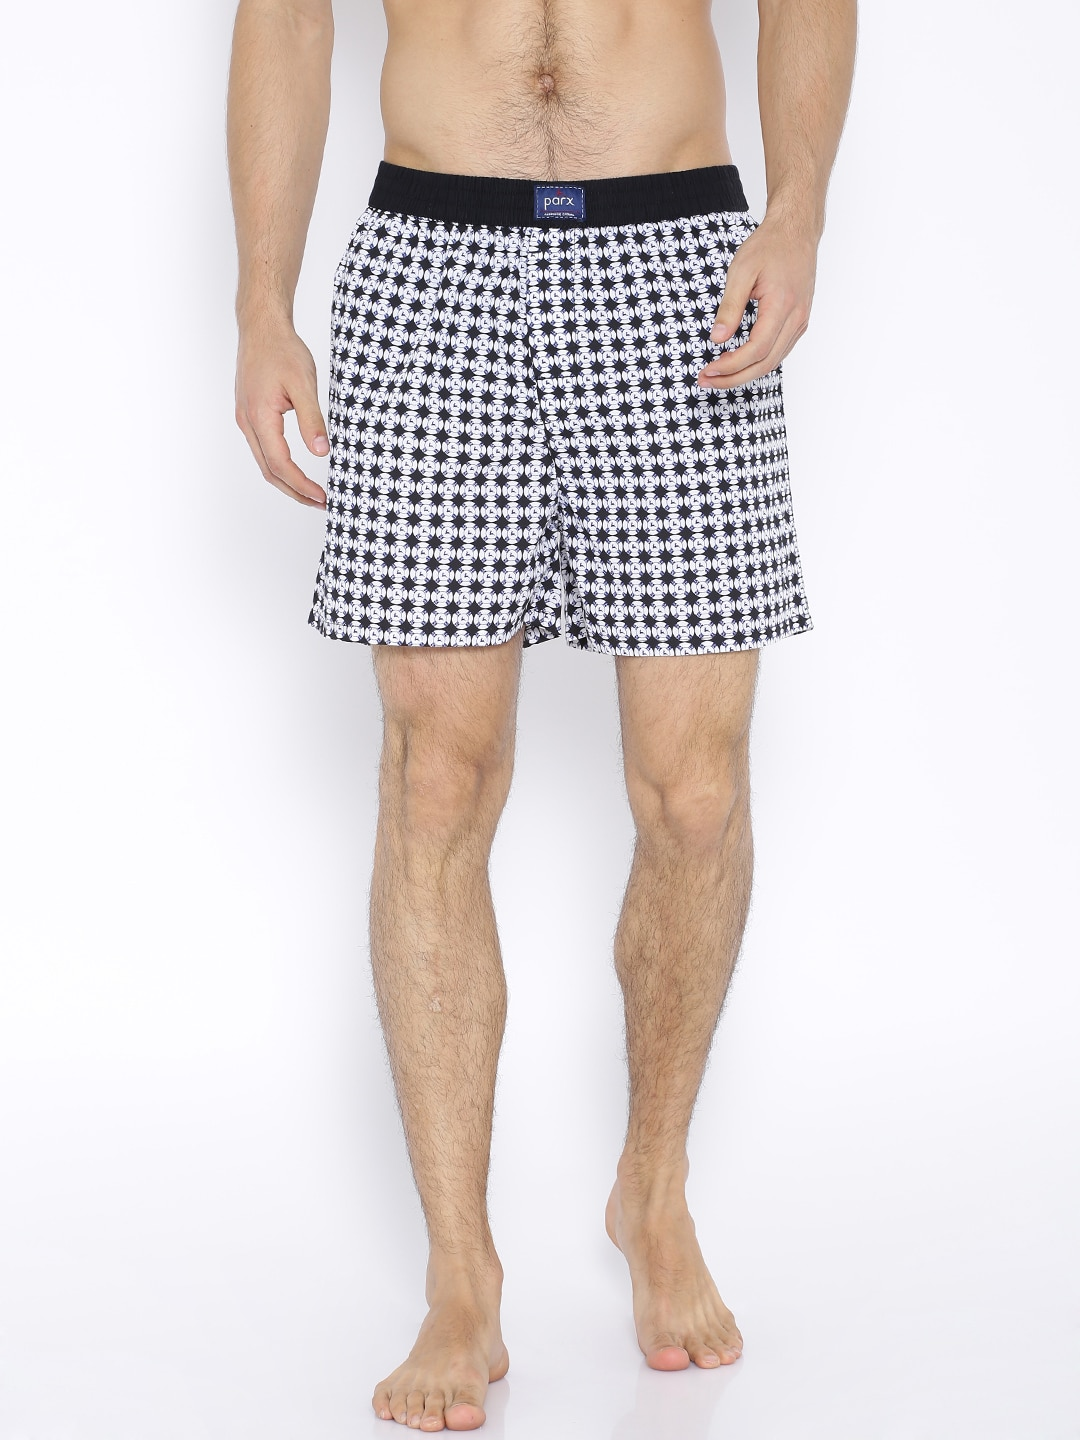 Parx Black & White Printed Boxers XMNH00131 image